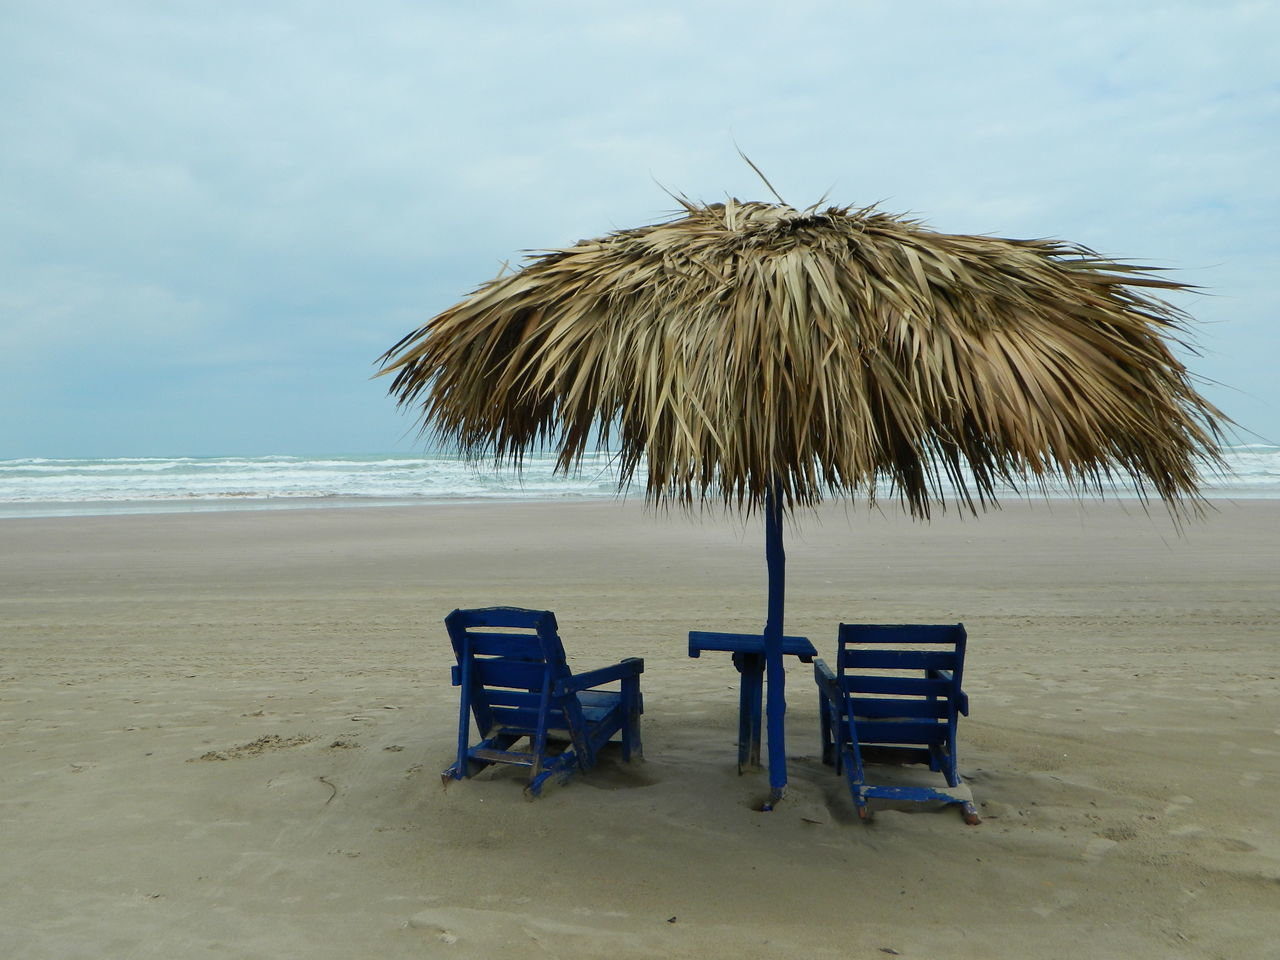 Beach Sand Sea Travel Destinations No People Vacations Summer Outdoors Chair Palm Tree Nature Day Sky Beauty In Nature Beauty In Nature Mexico Asthetic Tampico Blue Ocean❤ EyeEmNewHere